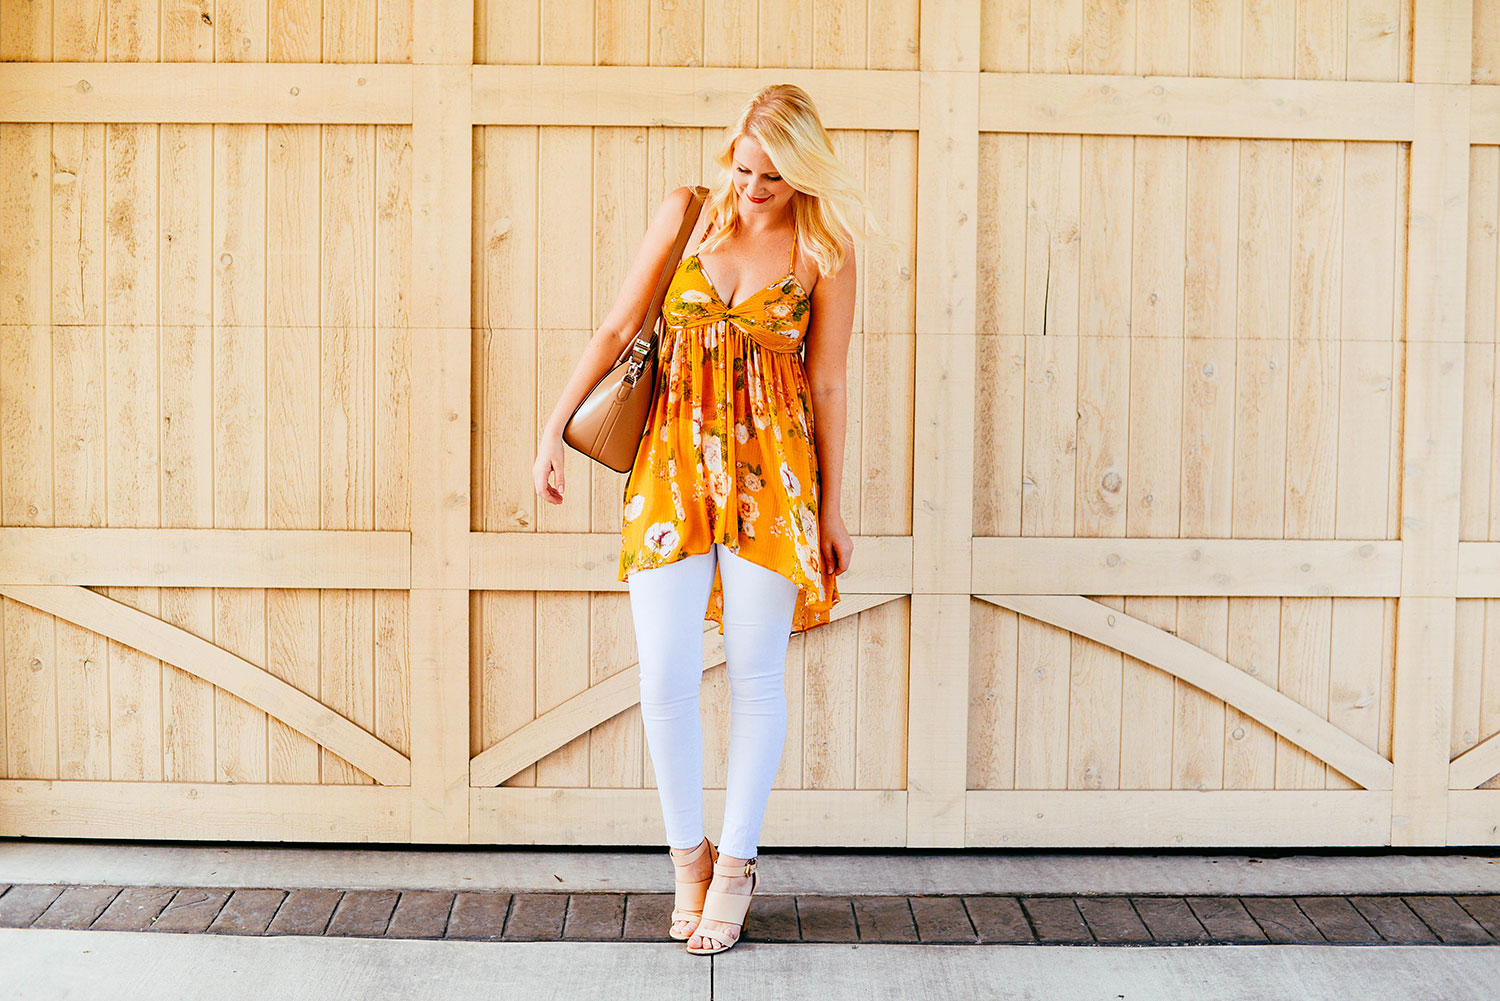 Marigold | The Style Scribe